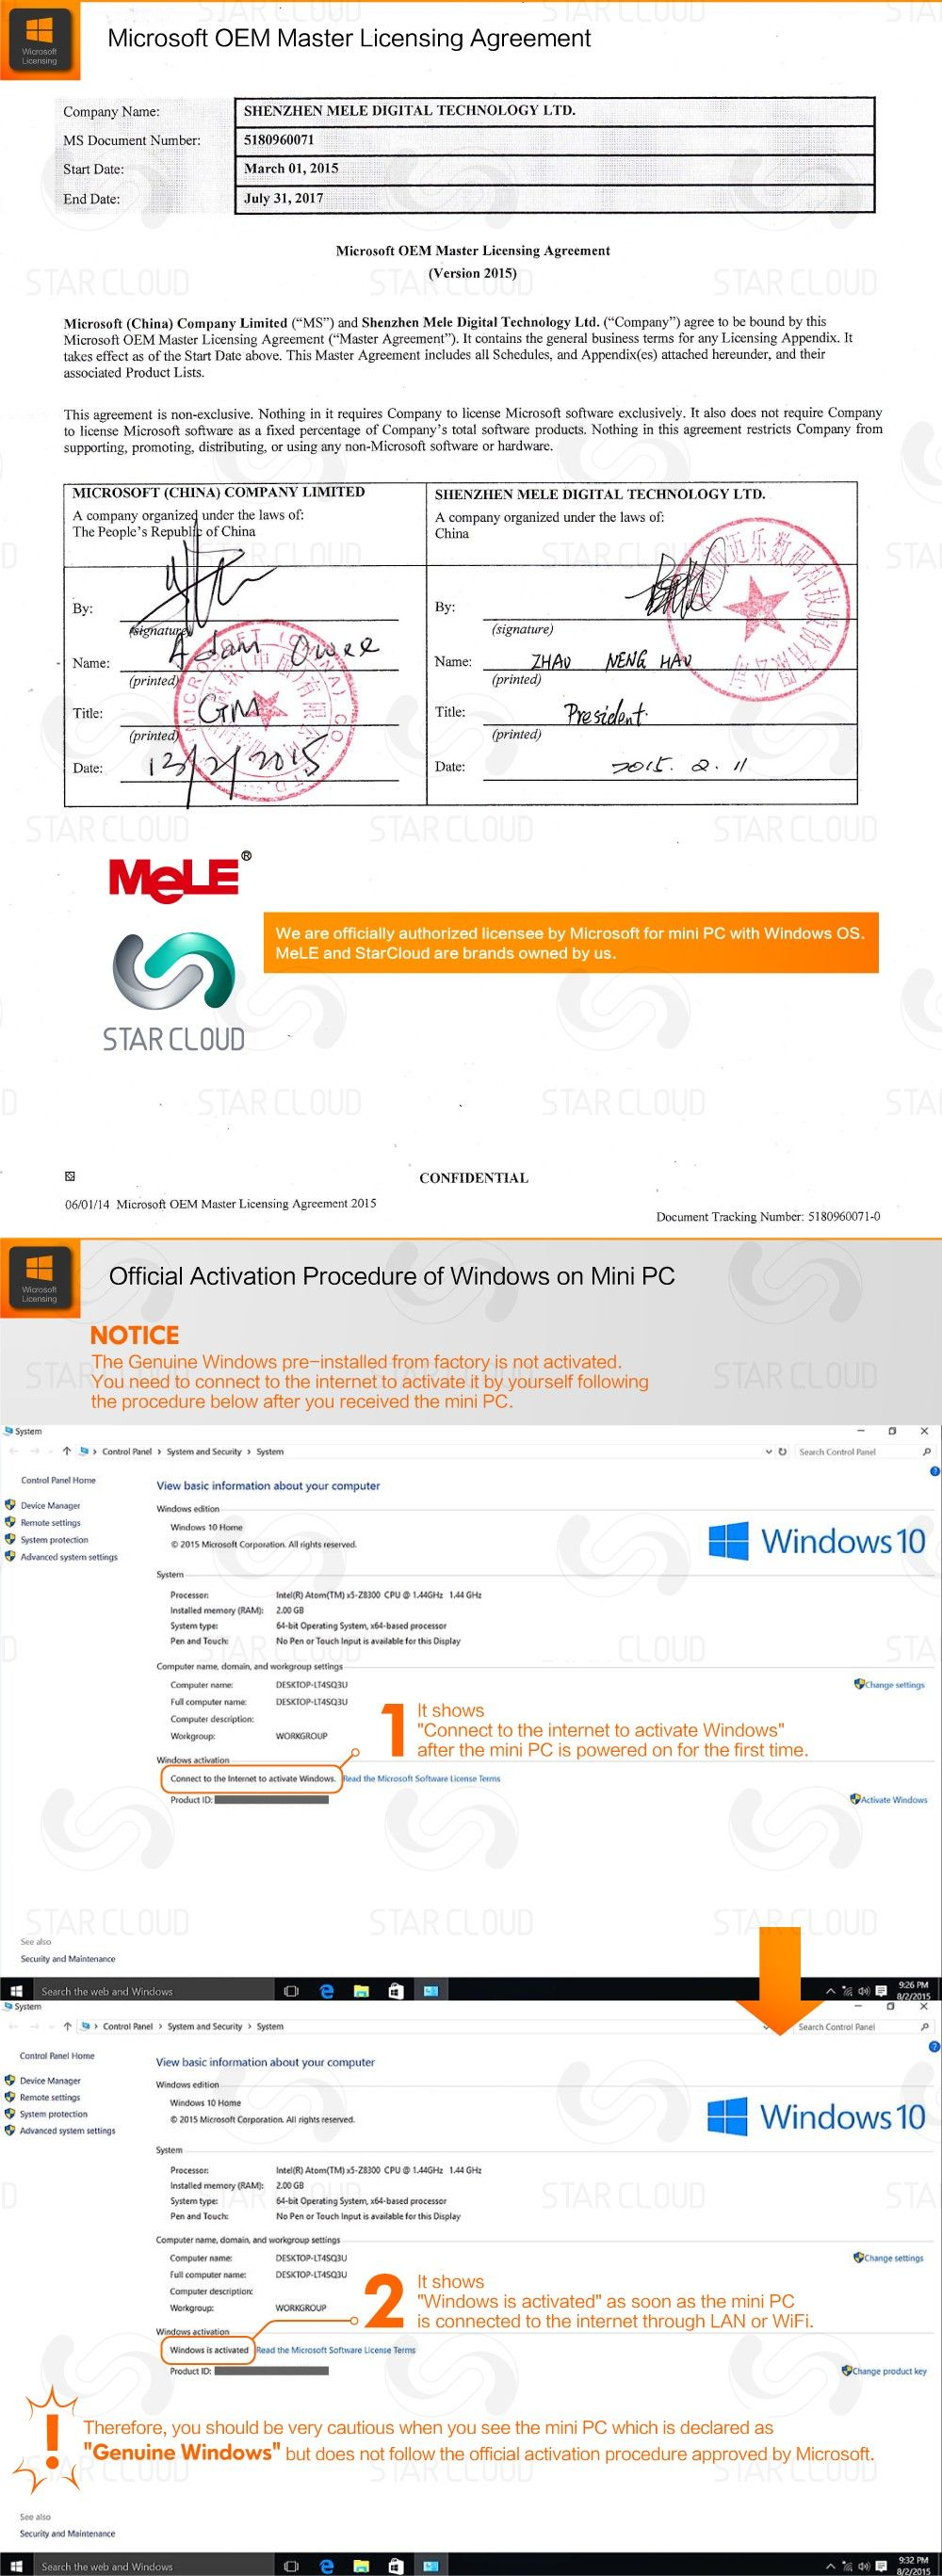 "Microsoft OEM Master Licensing Agreement Company Name:	SHENZHEN MELE DIGITAL TECHNOLOGY LTD. MS Document Number:	5180960071 Start Date:	March 01, 2015 End Date:	July 31,2017 Microsoft OEM Master Licensing Agreement (Version 2015) Microsoft (China) Company Limited (""MS"") and Shenzhen Mele Digital Technology Ltd. (""Company"") agree to be bound by this Microsoft OEM Master Licensing Agreement (""Master Agreement""). It contains the general business terms for any Licensing Appendix. It takes effect as of the Start Date above. This Master Agreement includes all Schedules, and Appendix(es) attached hereunder, and their associated Product Lists. This agreement is non-exclusive. Nothing in it requires Company to license Microsoft software exclusively. It also does not require Company to license Microsoft software as a fixed percentage of Company's total software products. Nothing in this agreement restricts Company from supporting, promoting, distributing, or using any non-Microsoft software or hardware. MICROSOFT (CHINA) COMPANY LIMITED	SHENZHEN MELE DIGITAL TECHNOLOGY LTD. A company organize! under the laws of:	A company organized under the laws of: The People's Republj: of China	China  • Name:	Name: 	 (printed (printed) Title: Title:   (printed (printed) Date: Date:  MeLE STAR CLOUD CONFIDENTIAL 06/01/14 Microsoft OEM Master Licensing Agreement 2015 Document Tracking Number: 5180960071-0 Official Activation Procedure of Windows on Mini PC NOTICE The Genuine Windows pre-installed from factory is not activated. You need to connect to the internet to activate it by yourself following the procedure below after you received the mini PC. **System Control Rand > System and Security > System	Control Panel Control Panel Home	View basic information about your computer Device Manager	Widows edition Remote settings	Window 10 Home System protection 2016 Microsoft Corporation All rights reserved Advanced system settings System Processor:	Intel(R) Atom(TM) xi-ZMOO CPU O 1.44GHz 1.44 GHz Installed memory (RAM):	2.00 GB System type;	64-bit Operating System, x64 based processor Pen and Touch:	No Pen or Touch Input n available for this Otsplay Computer name, domain, and workgroup settings Computer name:		hang-writing Settings Fid computer name.	DlSKIOP-LI4SQ3U	.. , Computer description: workgroup WORKGROUP ""Connect to the internet to activate Windows"" after the mini PC is powered on for the first time. Connect to the Internet to activate Windows Read the Microsoft Software License Terms Product ID.	Activate Windows See also Security and Maintenance Control Rand > System and Security > System	Search Control Panel  Control Panel Home View basic information about your Computer Device Manager	Windows edition Remote settings	Windows Home System protection	© 201S Microsoft Corporation. All rights reserved Advanced system settings System Processor.	Intel(R) Atom(TM) *5-ZSJ00 CPU 9 1.44GHz 1.44 GHz Installed memory (RAM):	2.00 GB System type:	64-bit Operating System. x64-based processor Pen and Touch:	No Pen or Touch Input is available for this Display Computer name, domain, and workgroup settings Computer name:	DESKTOP-IT4SQ3U	Change settings Full computer name	DEKTOO-ITISOIU Computer description: WORKGROUP Windows is activated as soon as the mini PC is connected to the internet through LAN or WiFi. Windows activator Windows is activated the Microsoft Software License Terms Product ID:	Change product key Therefore, you should be very cautious when you see the mini PC which is declared as ""Genuine Windows"" but does not follow the official activation procedure approved by Microsoft. See also Security and Maintenance"